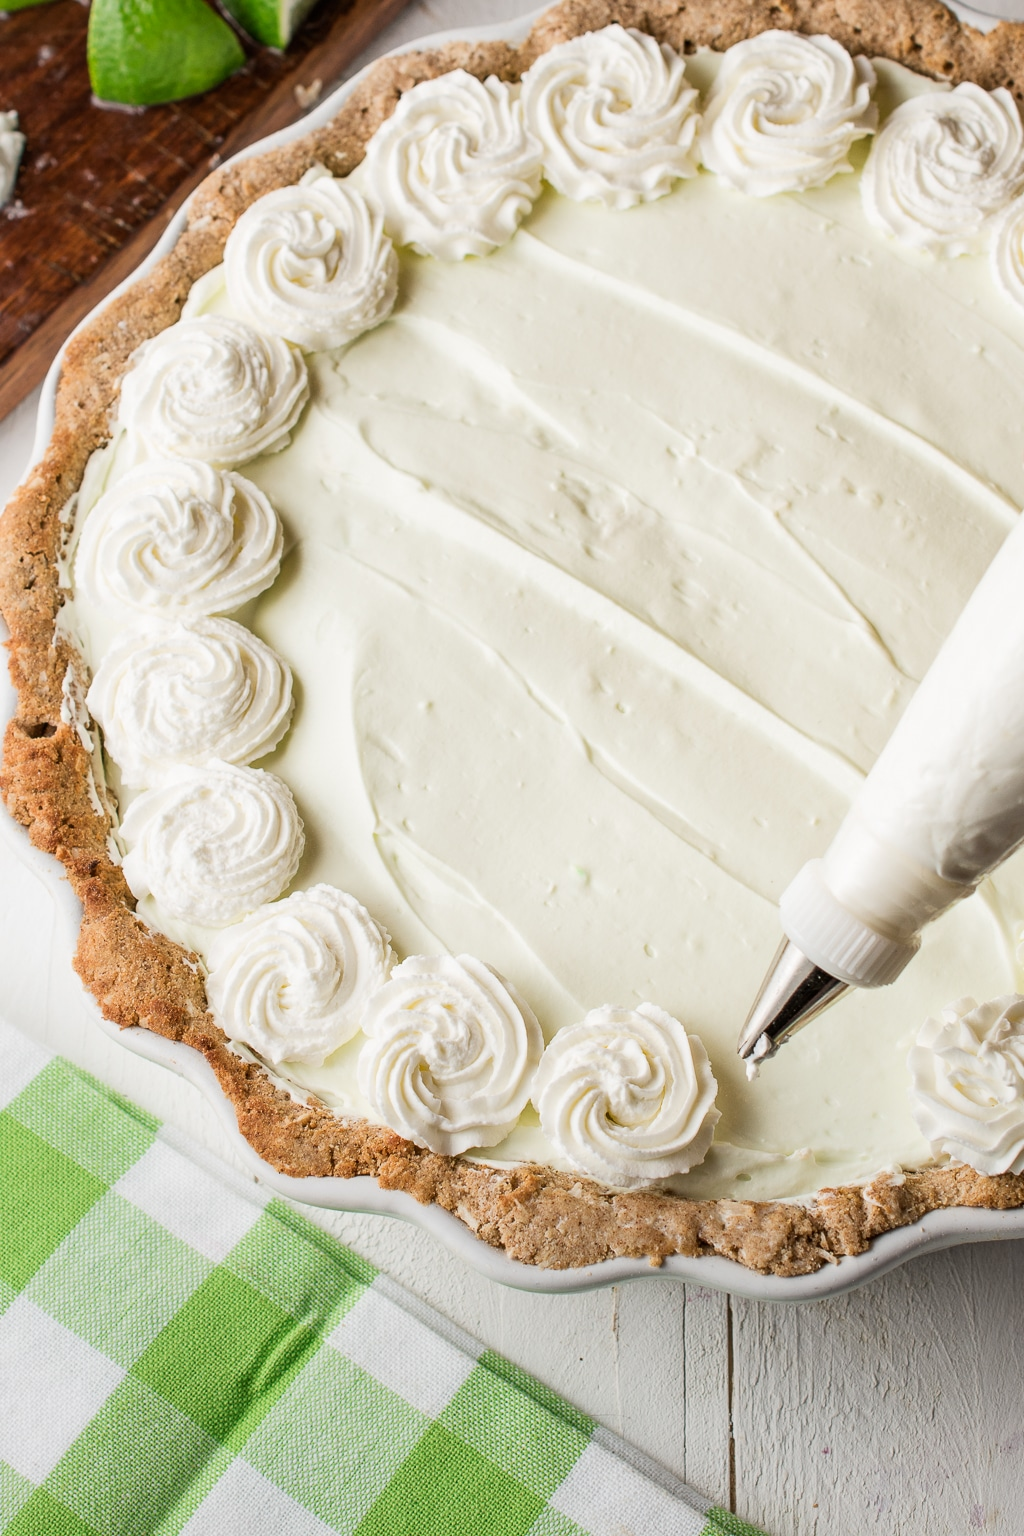 A key lime pie with whipped cream piped rosettes on a white background with green napkins and slices of lime